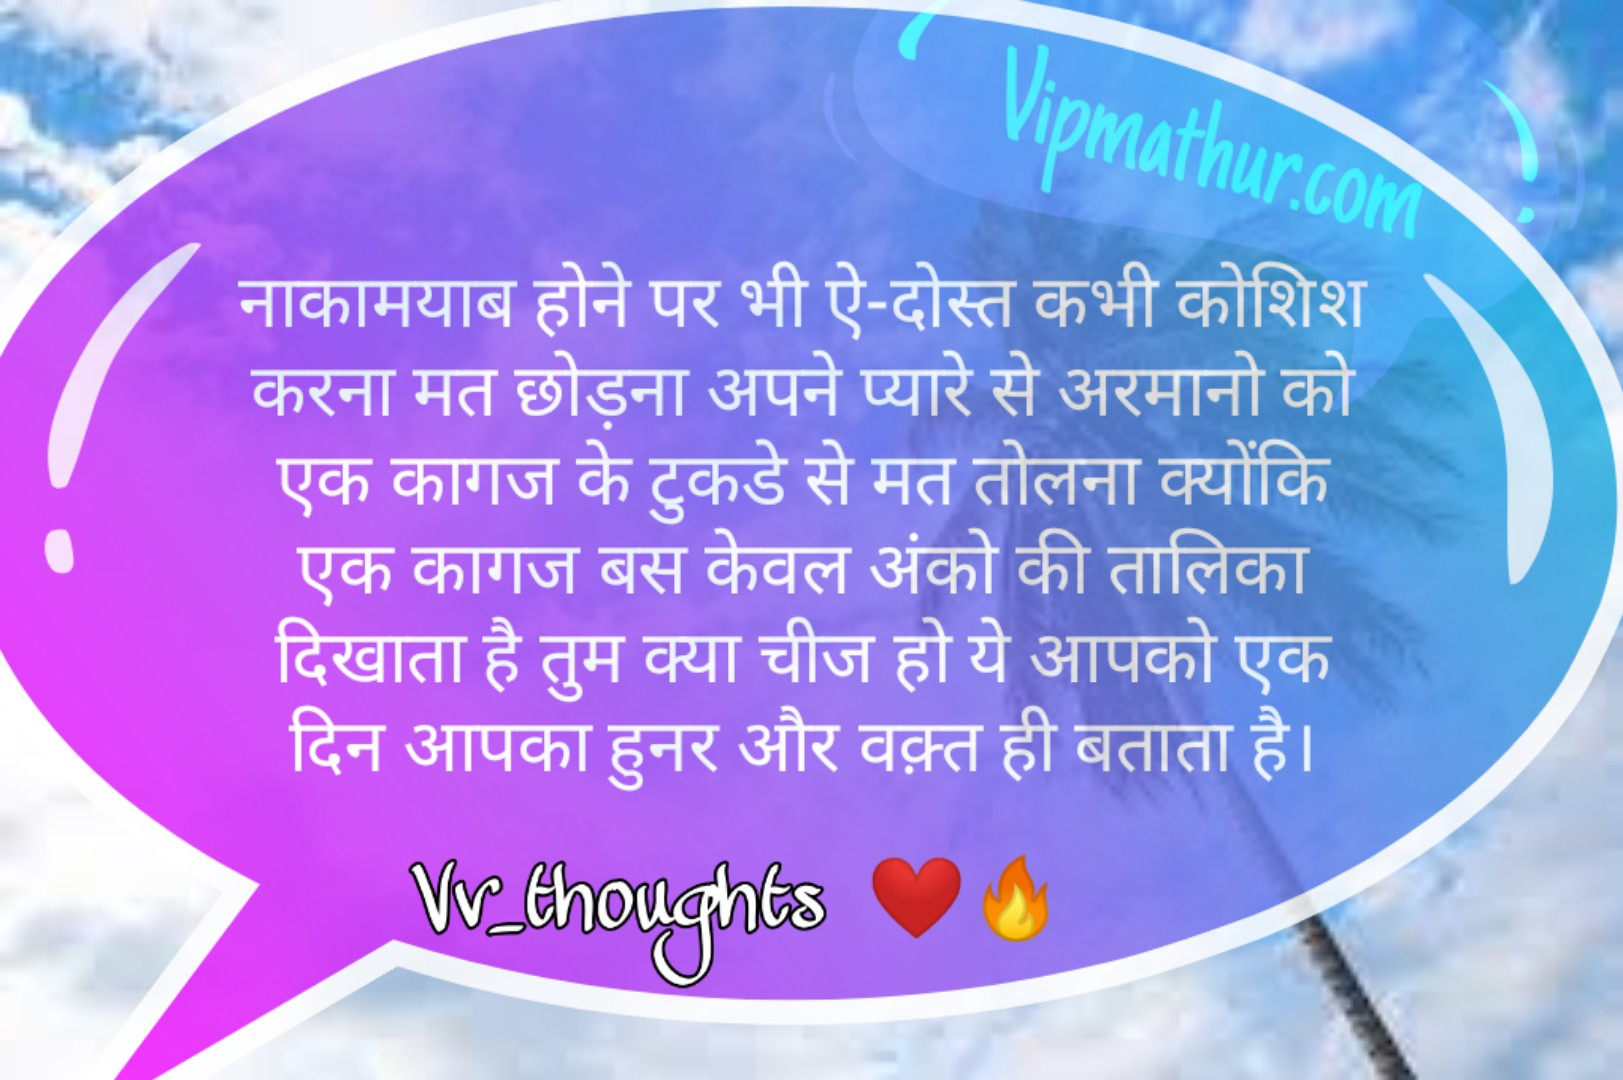 Thoughts of the day, New thought, poetries, motivational thoughts, motivational poetries